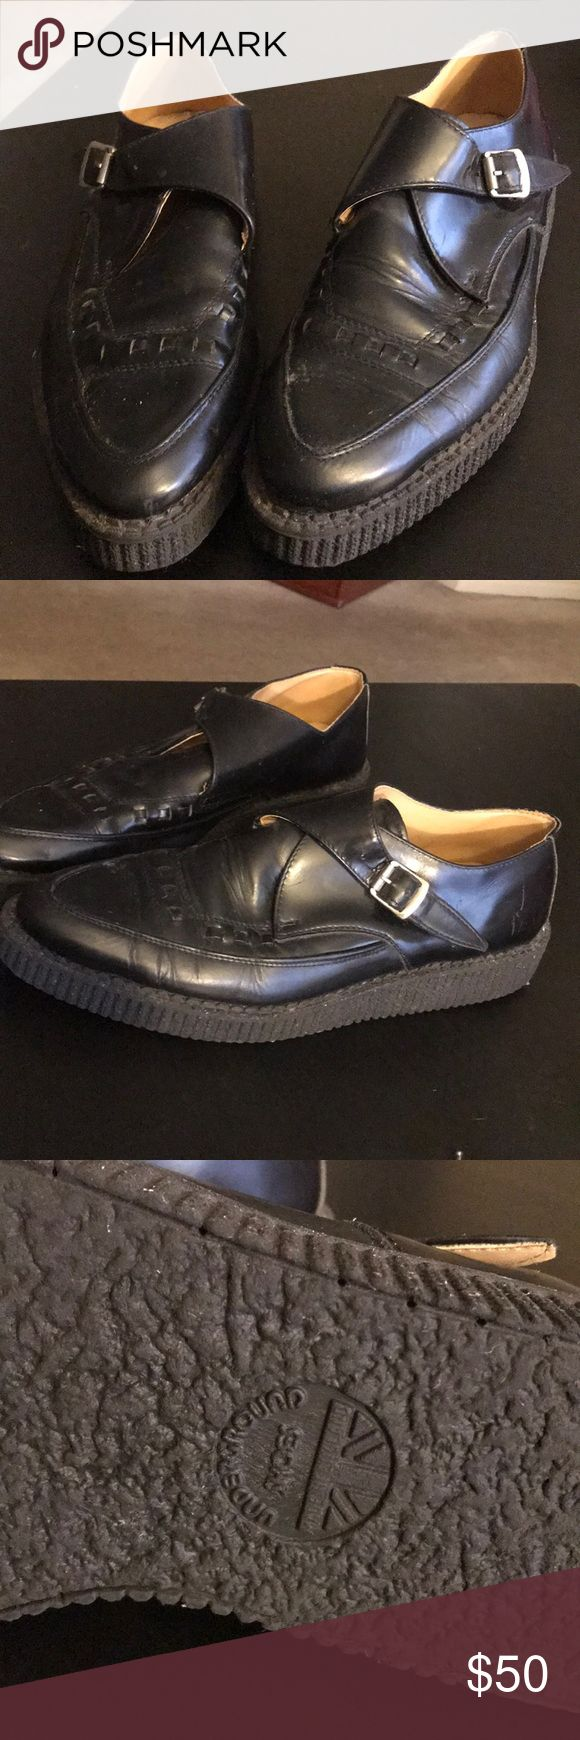 🦈underground men's shoes Great pair of black pointy buckle shoes from Underground shoes. Used but still in great shape. Slight wear on the soles. See pictures. Shoes are leather. Great with a pair of jeans or dress pants. Size 11. Underground Shoes Shoes